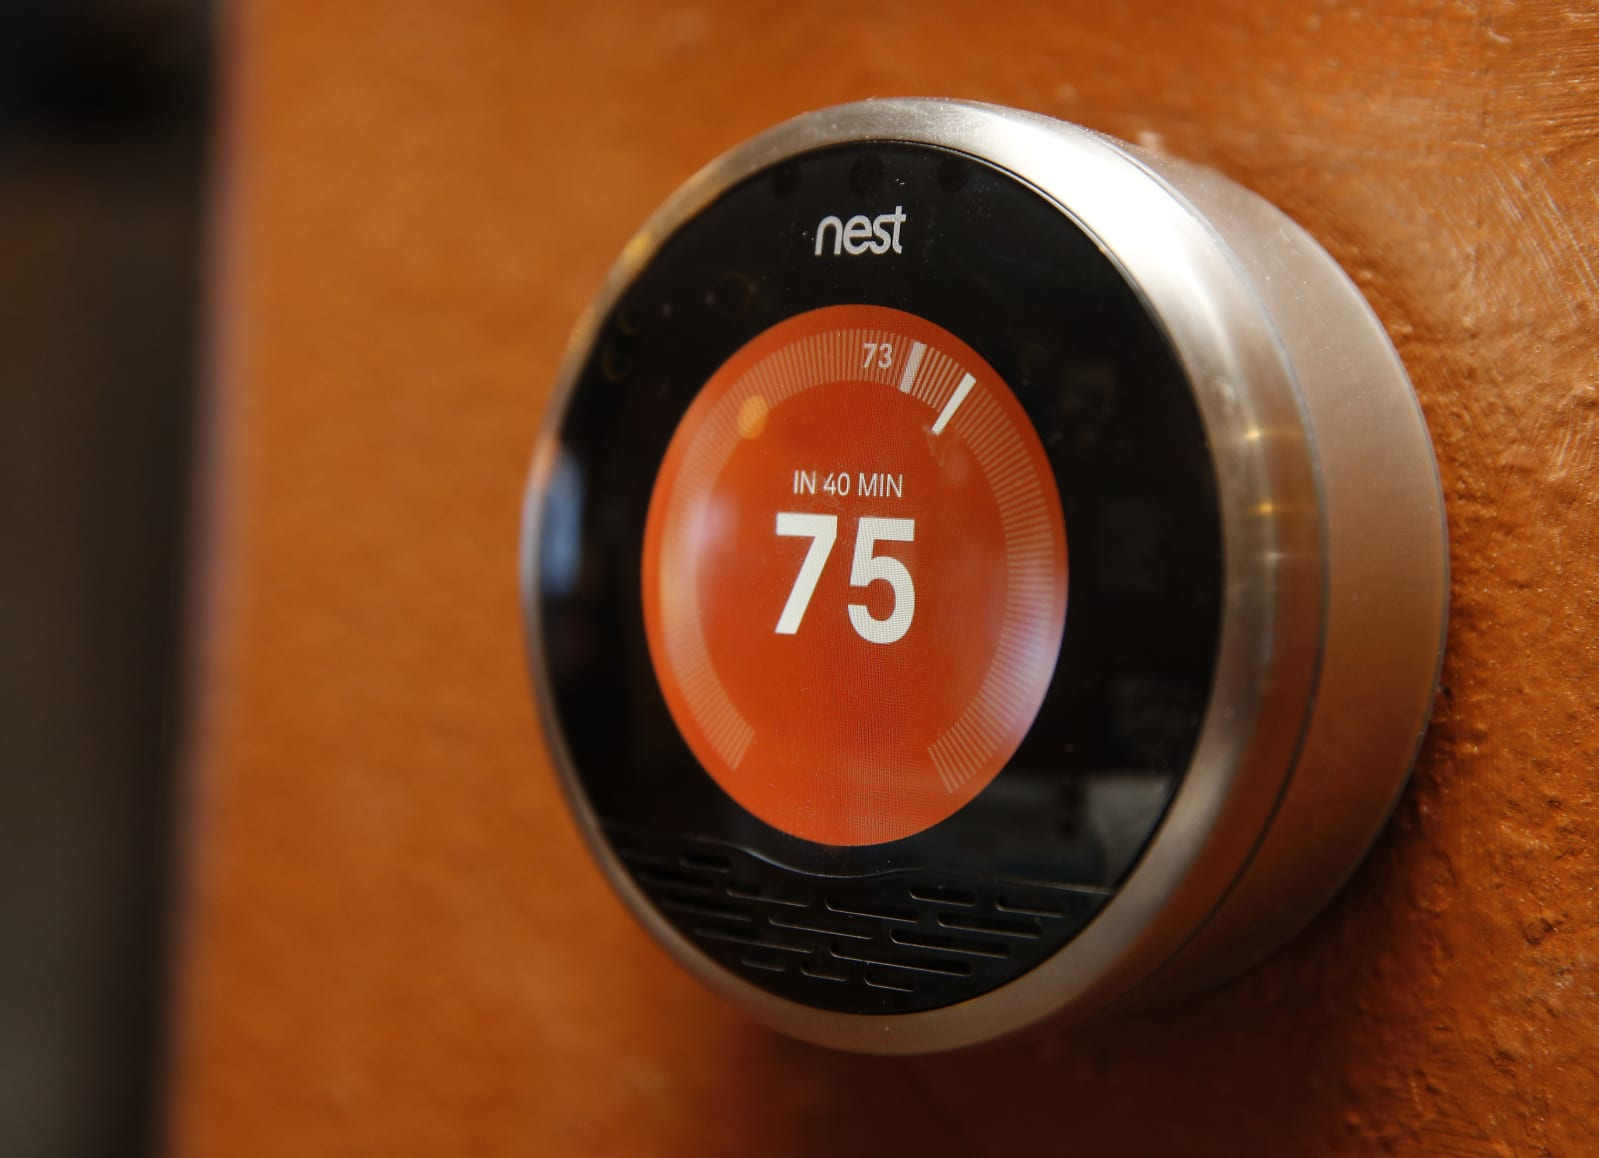 Google Nest could rule the smart home, if it can get privacy